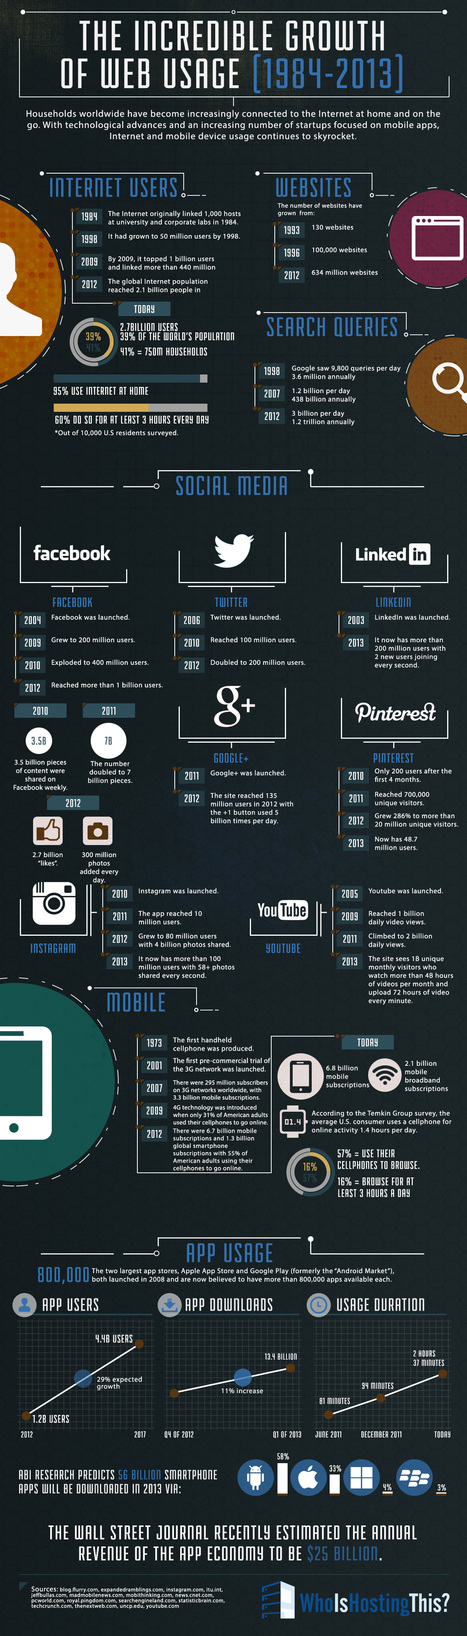 Infographic: The Incredible Growth of Web Usage [1984-2013] | Contemporary Learning Design | Scoop.it